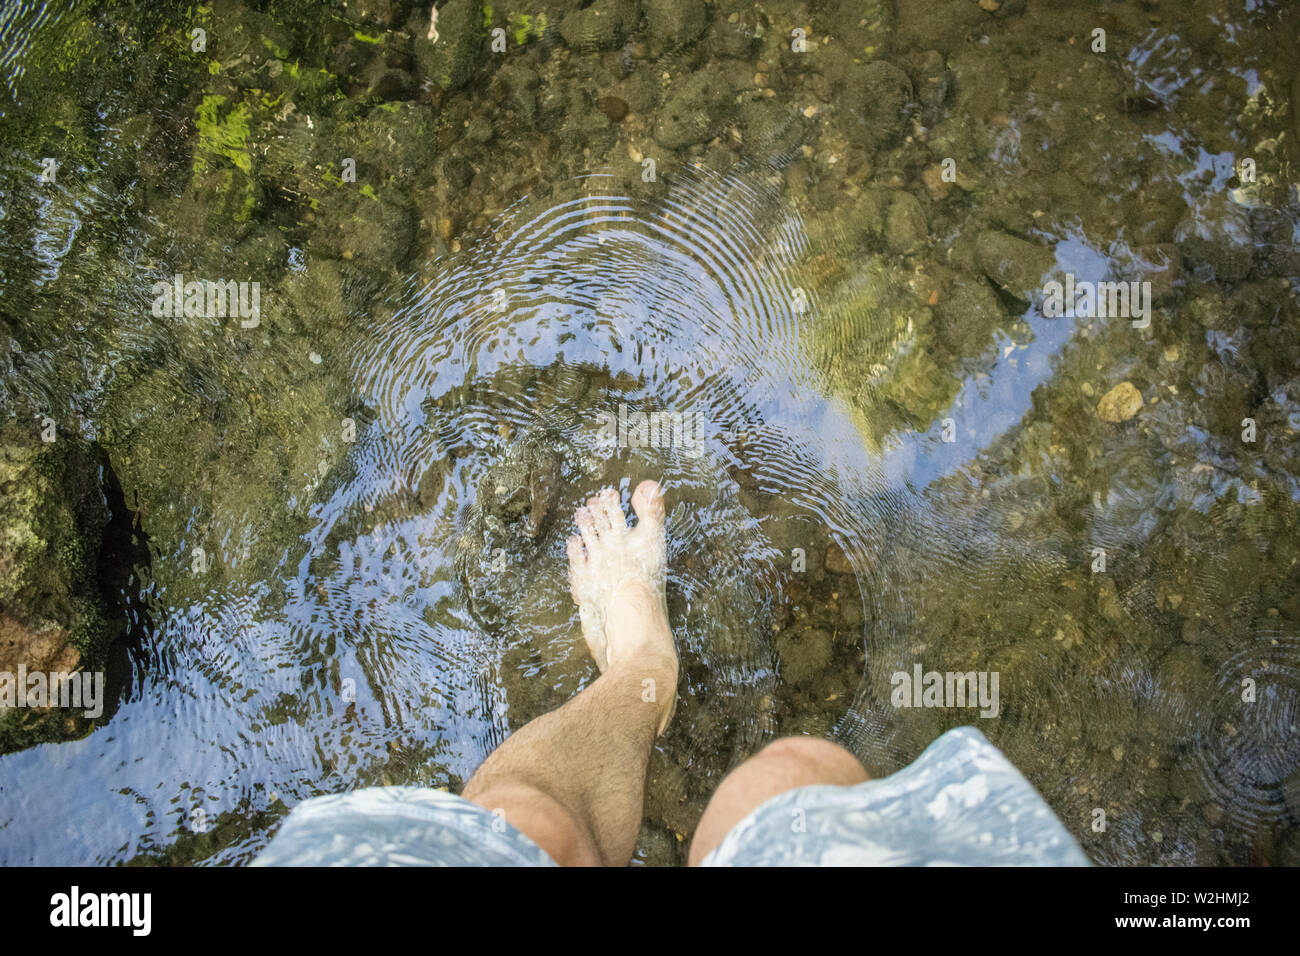 Left Male Barefoot In Shallow River - Stock Image